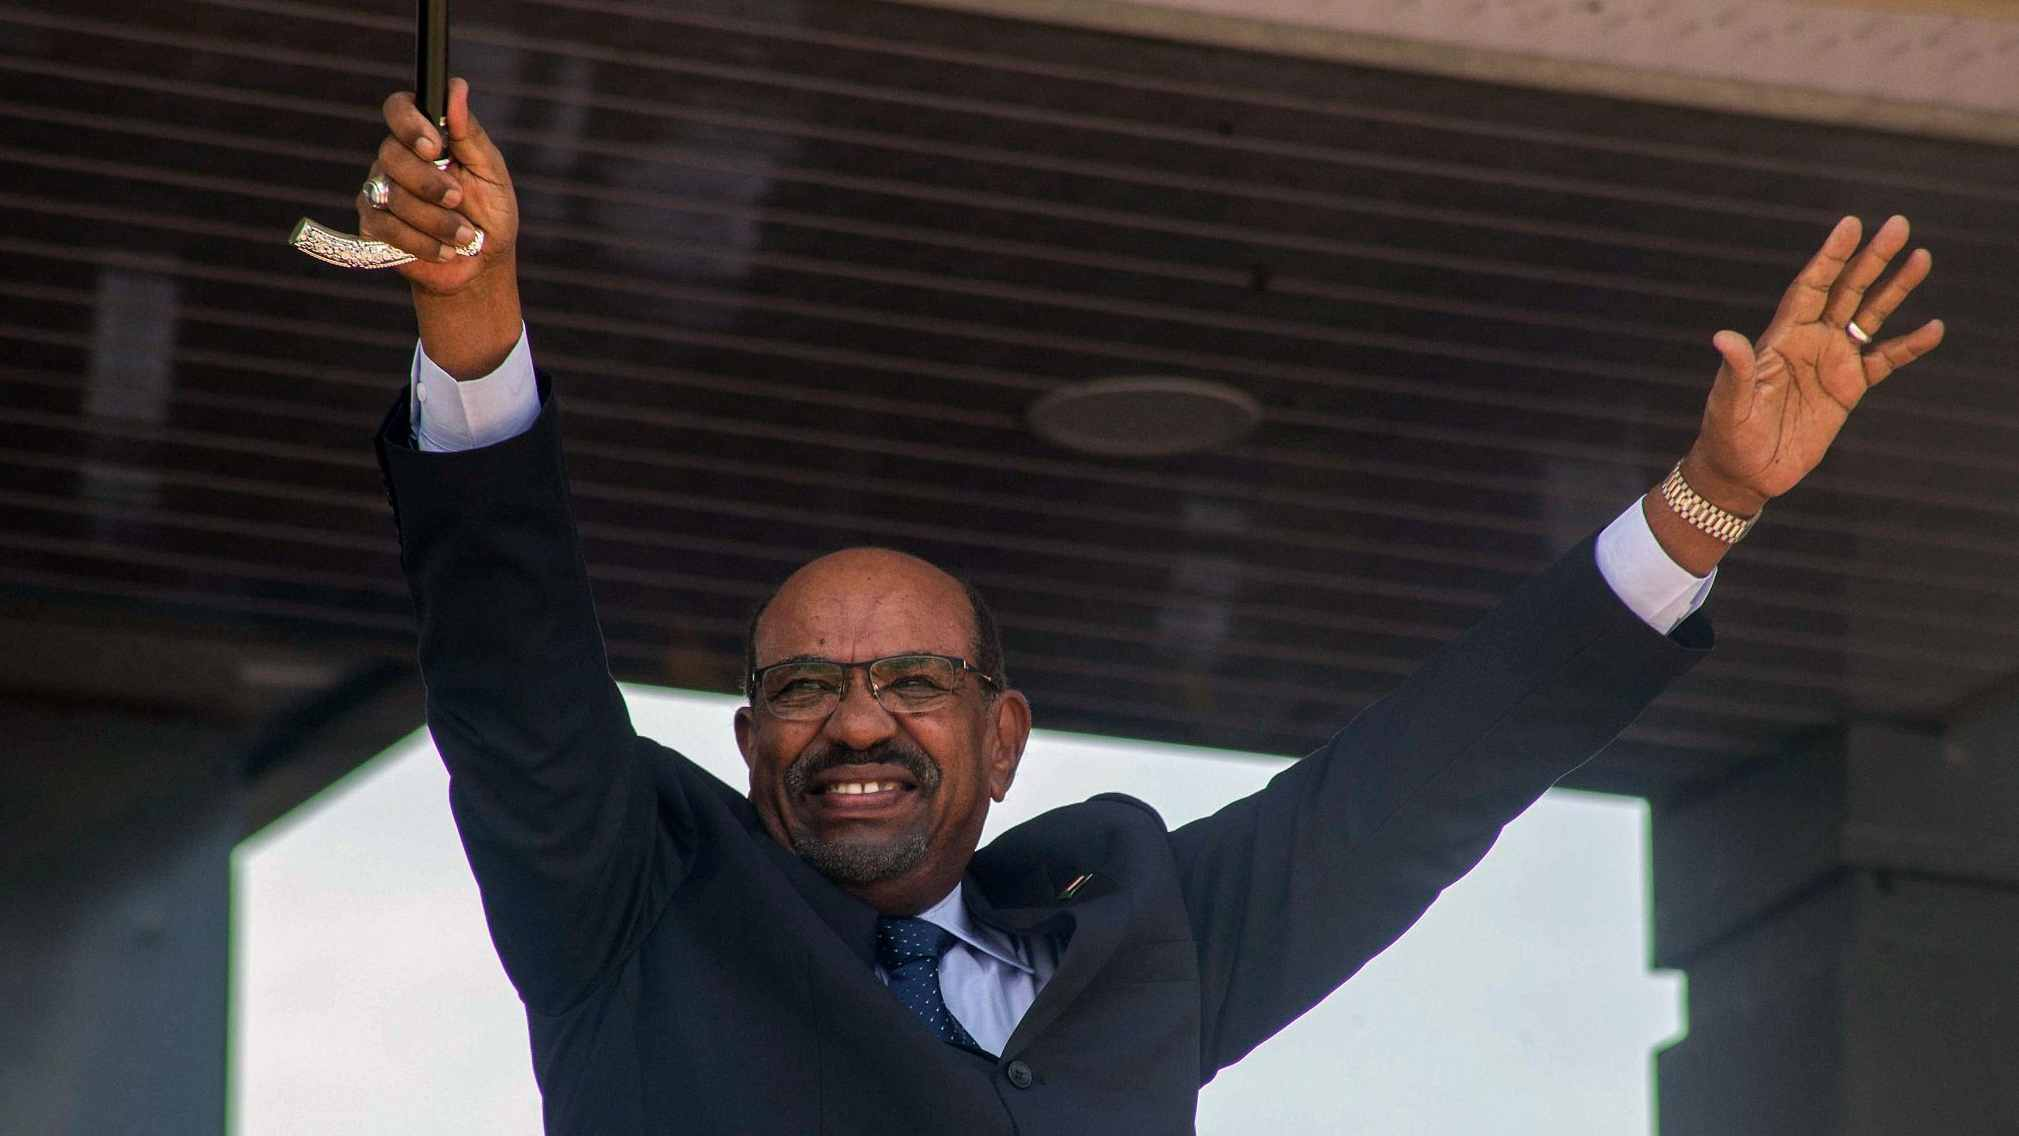 Sudan's president becomes first Arab leader to visit Syria since 2011